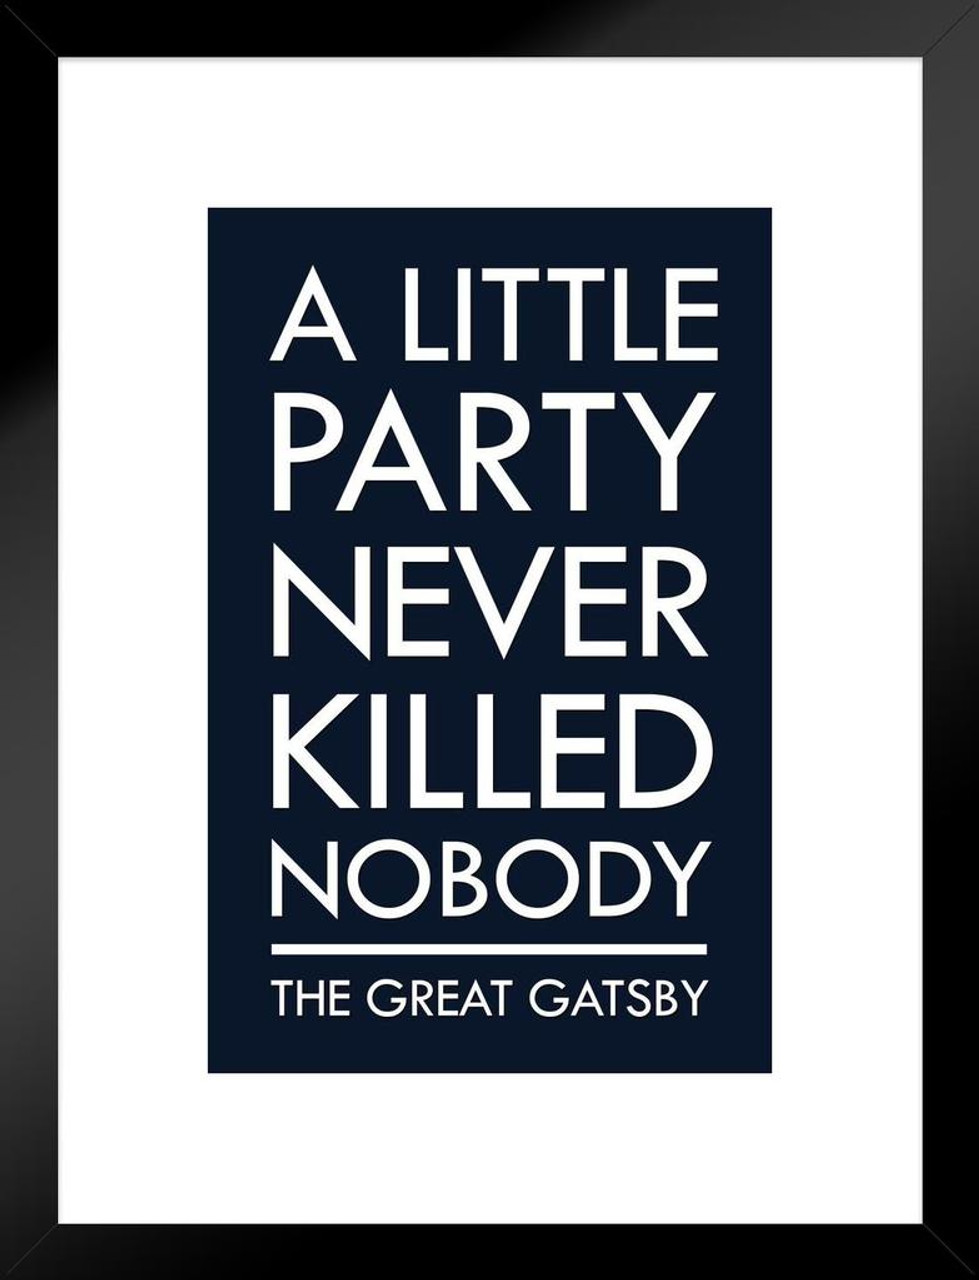 82f76a9959fe The Great Gatsby A Little Party Never Killed Nobody II Blue Movie Matted  Framed Wall Art Print 20x26 inch - Poster Foundry